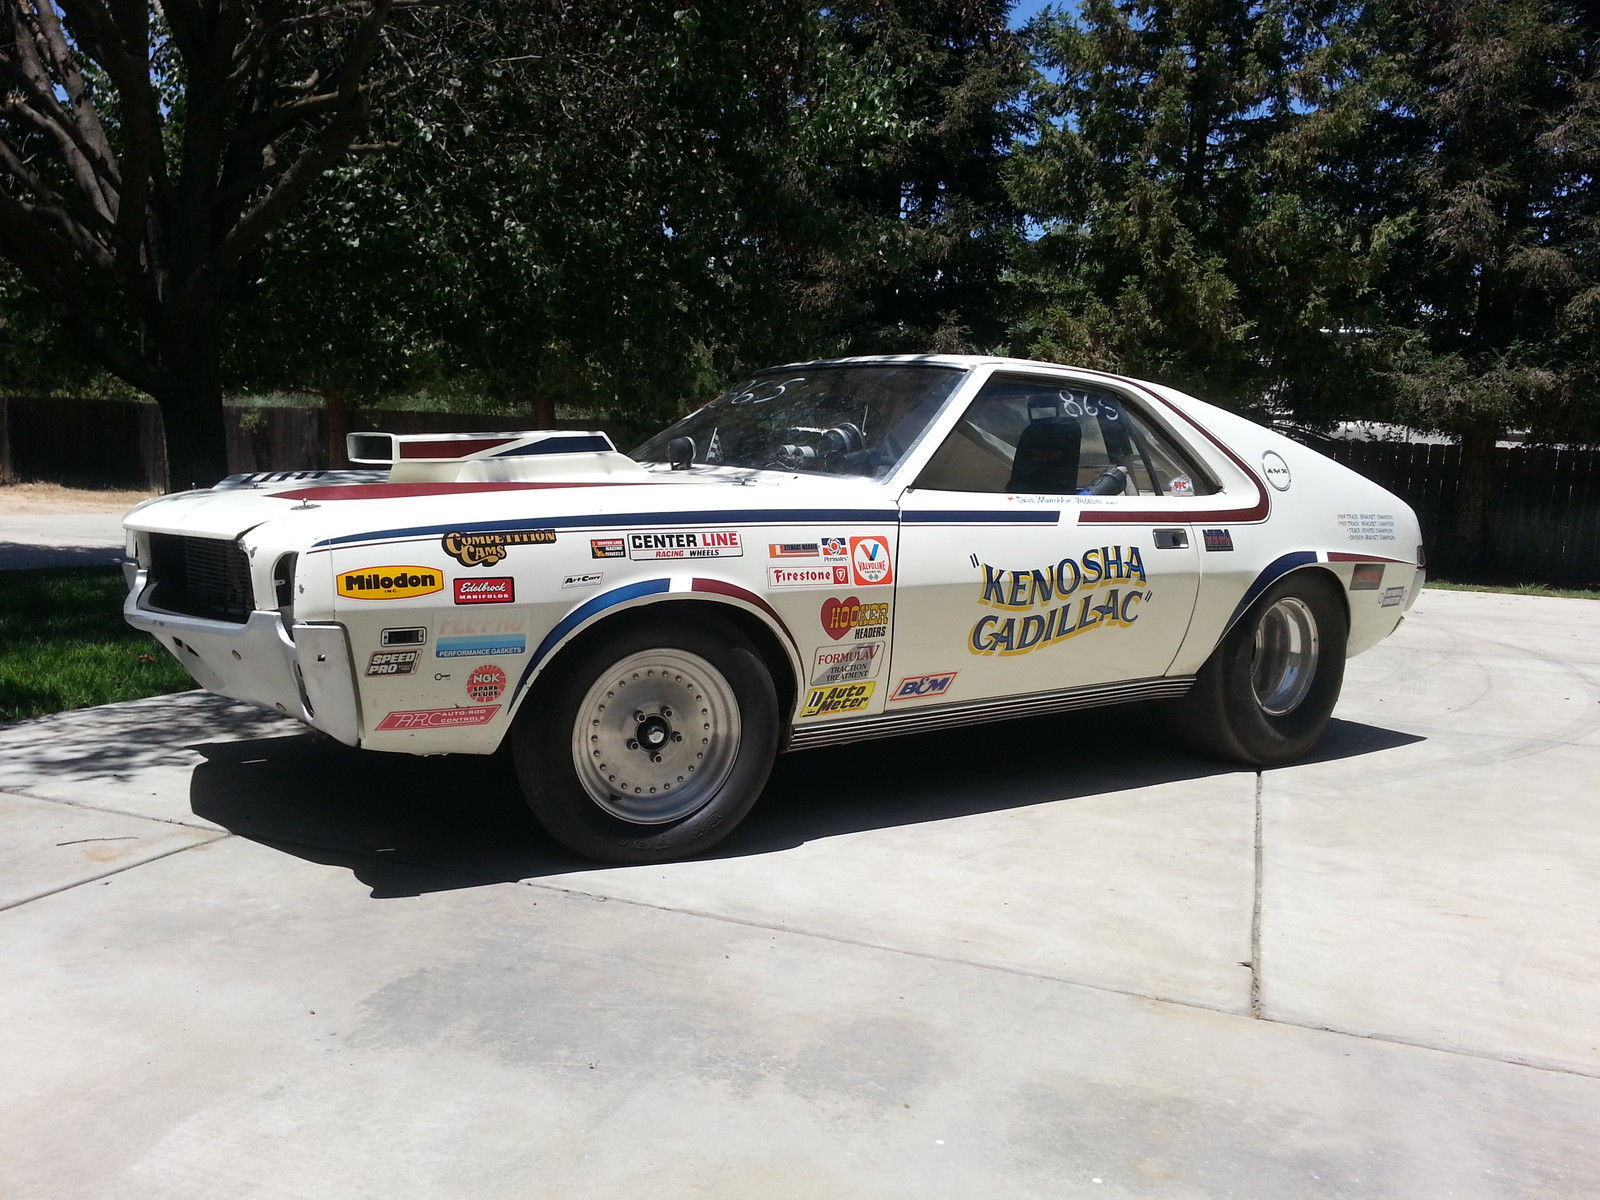 Auto For Sale Ebay: 1968 AMC AMX Drag Racer Put Up For Sale On EBAy, Could Be